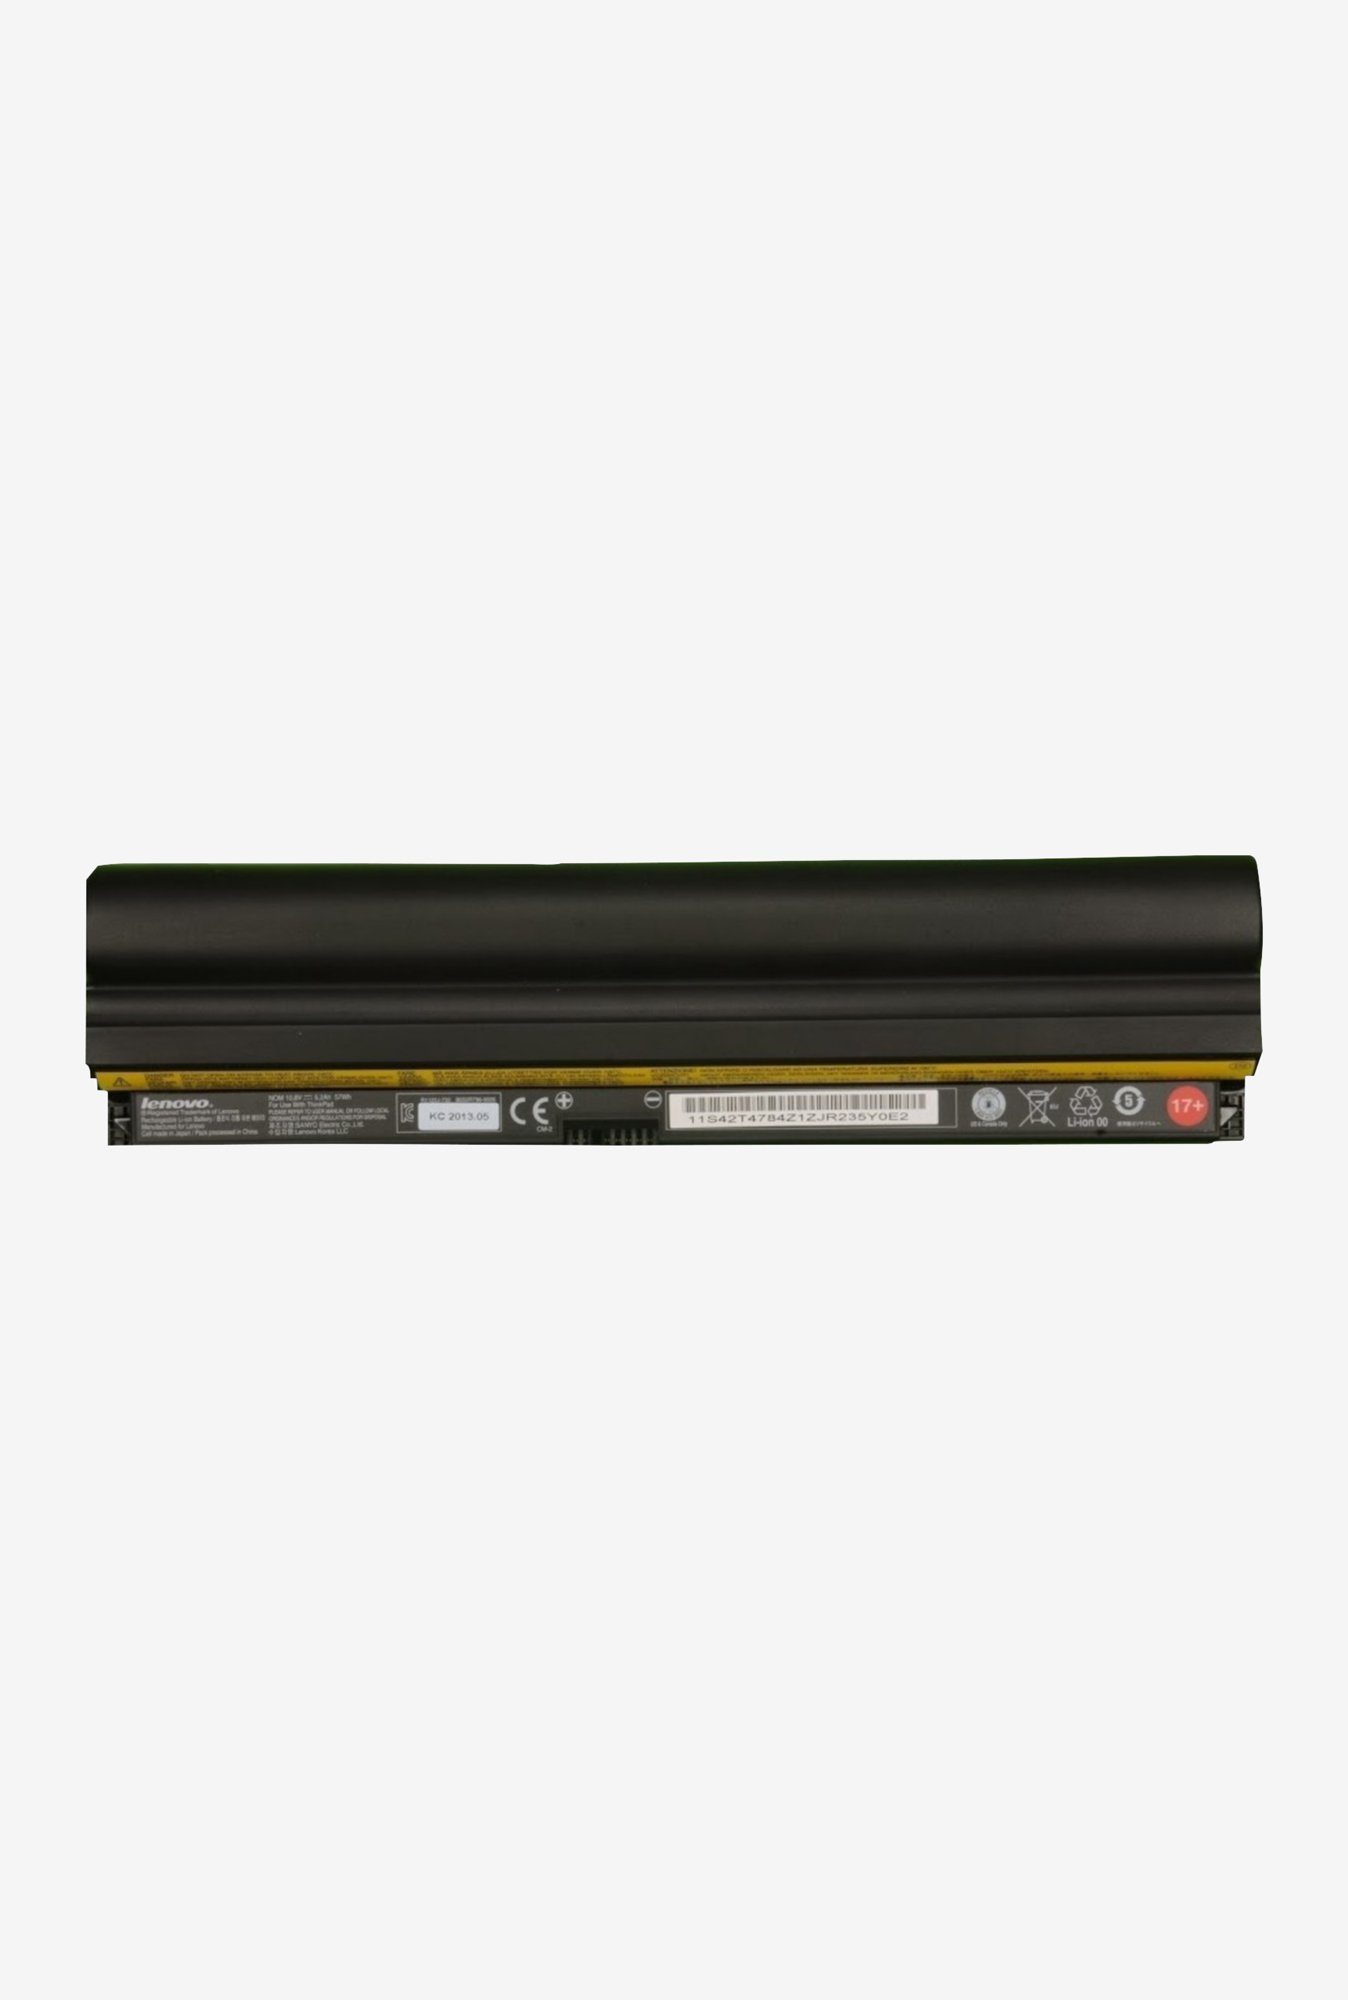 Lenovo 57Y4559 5200 mAh Laptop Battery Black